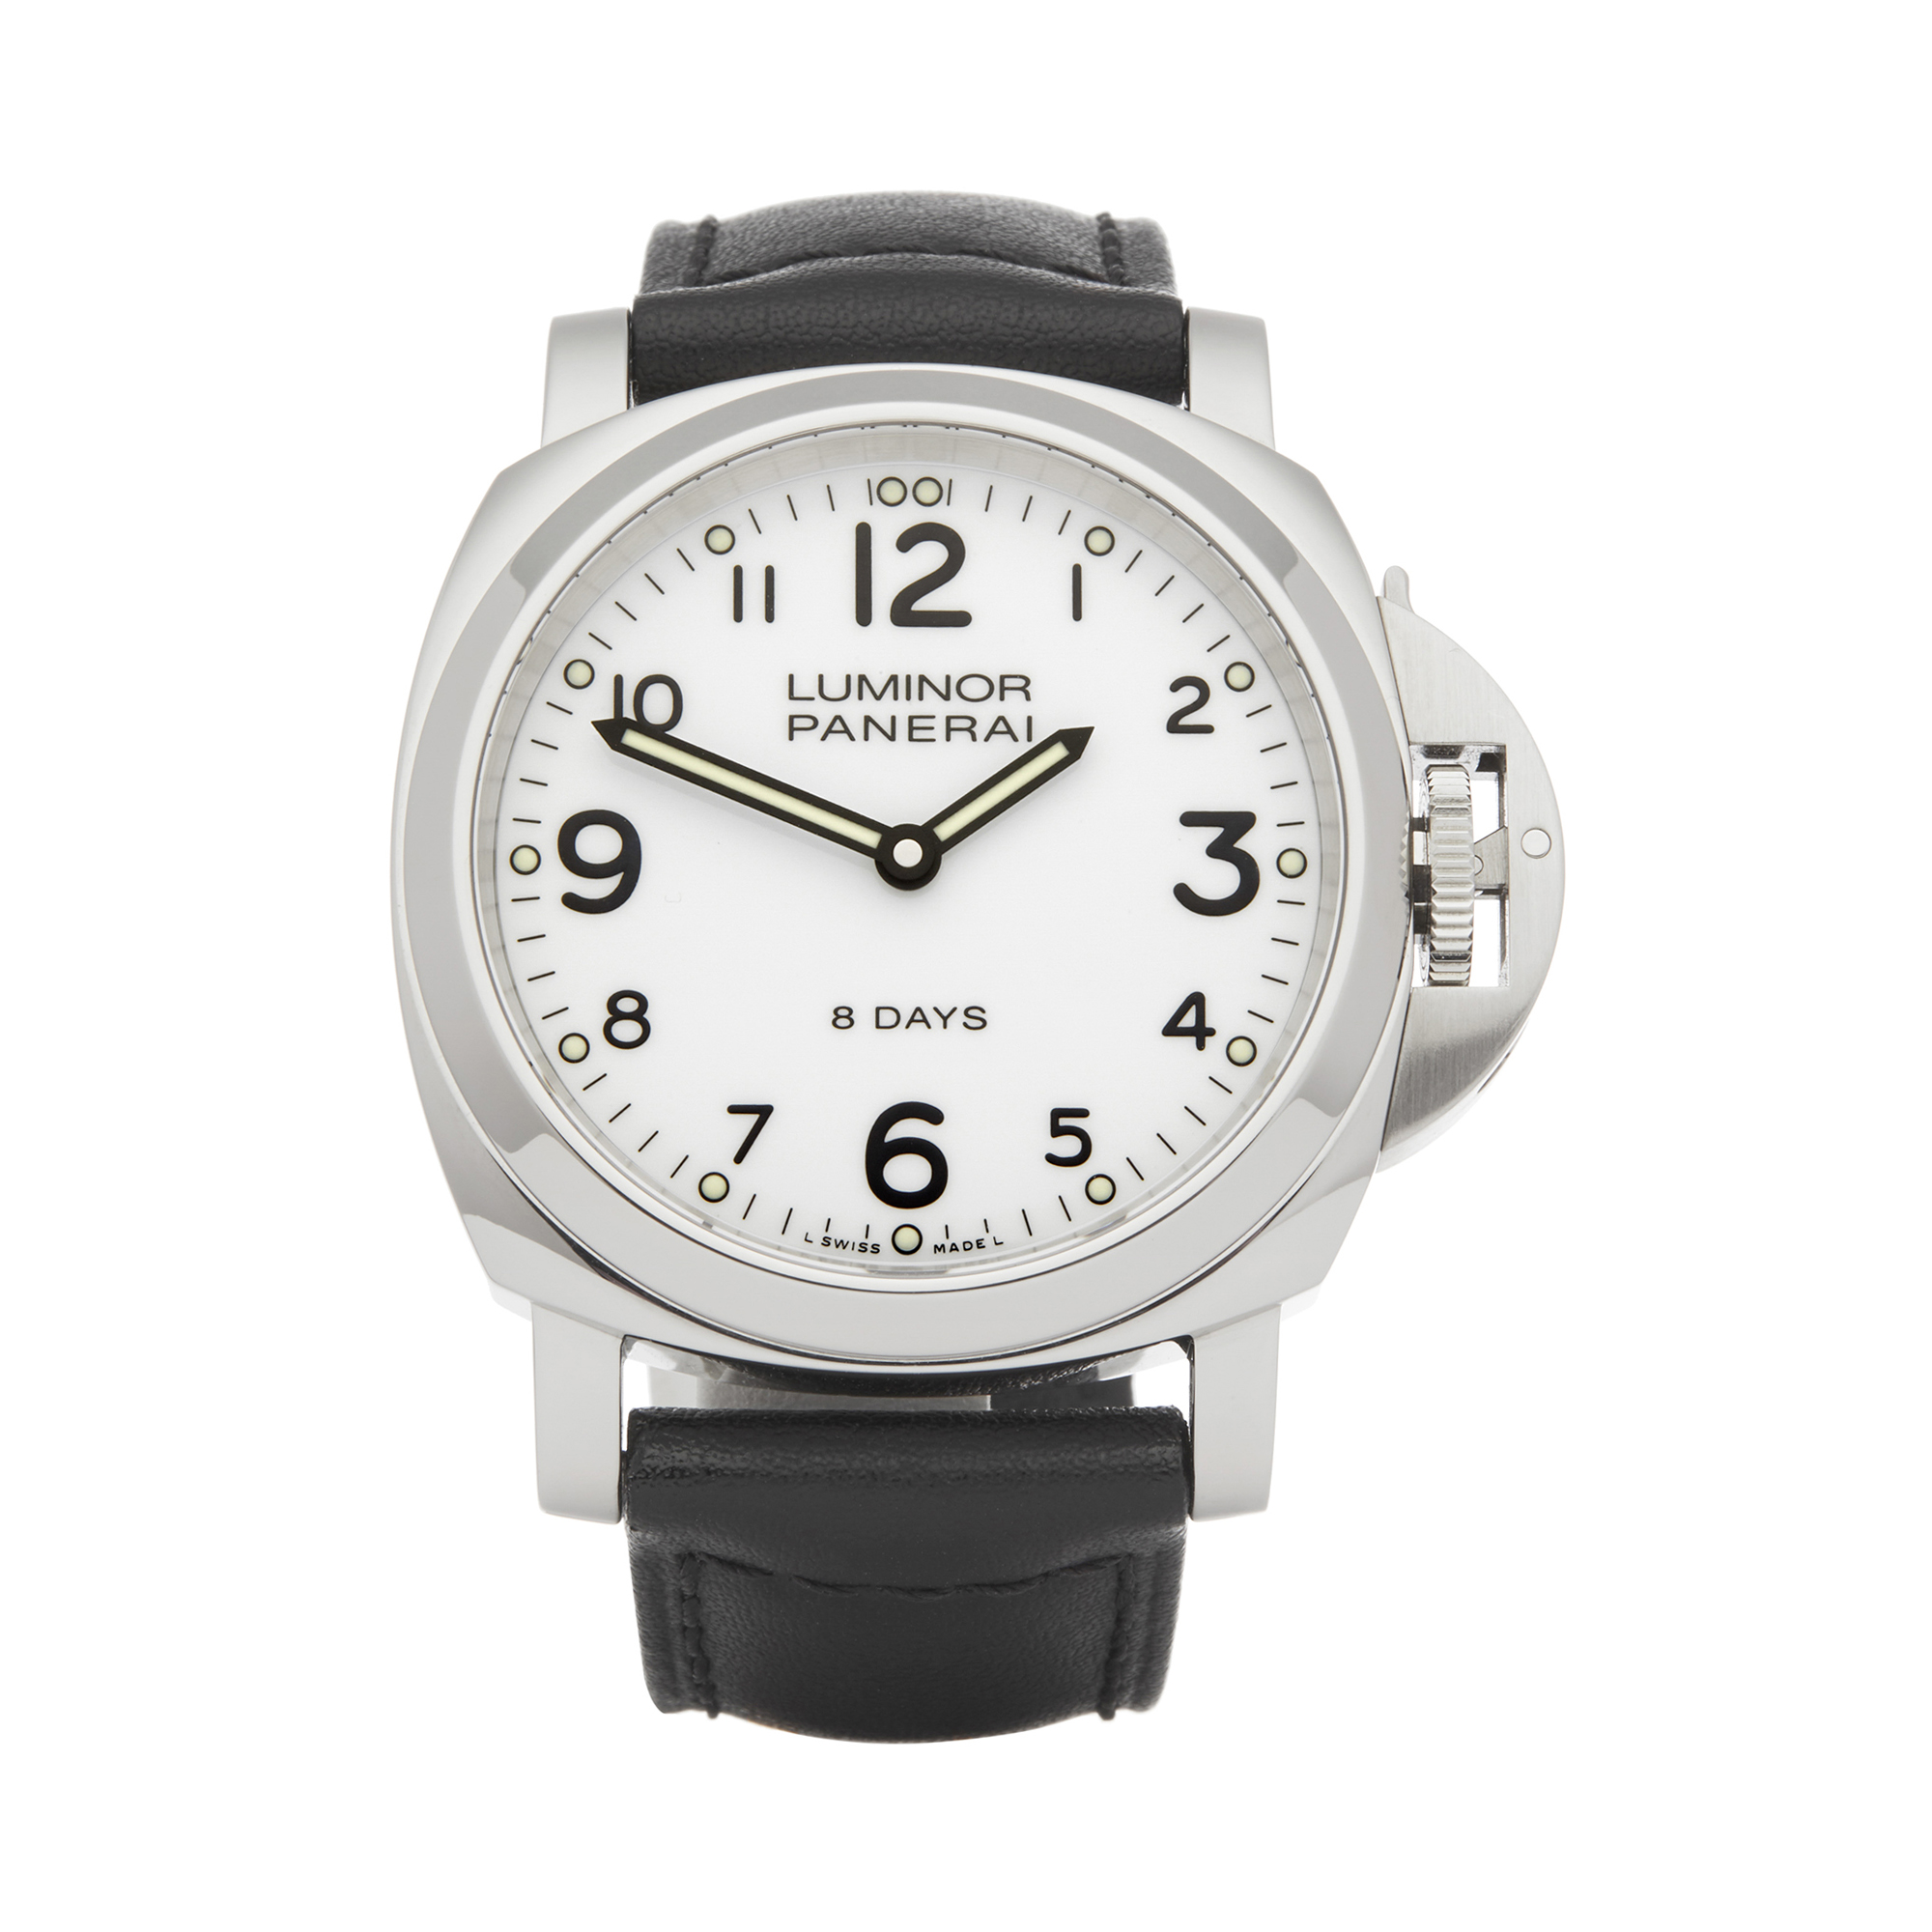 Panerai Luminor PAM00561 Men Stainless Steel Base 8 Days Watch - Image 8 of 8